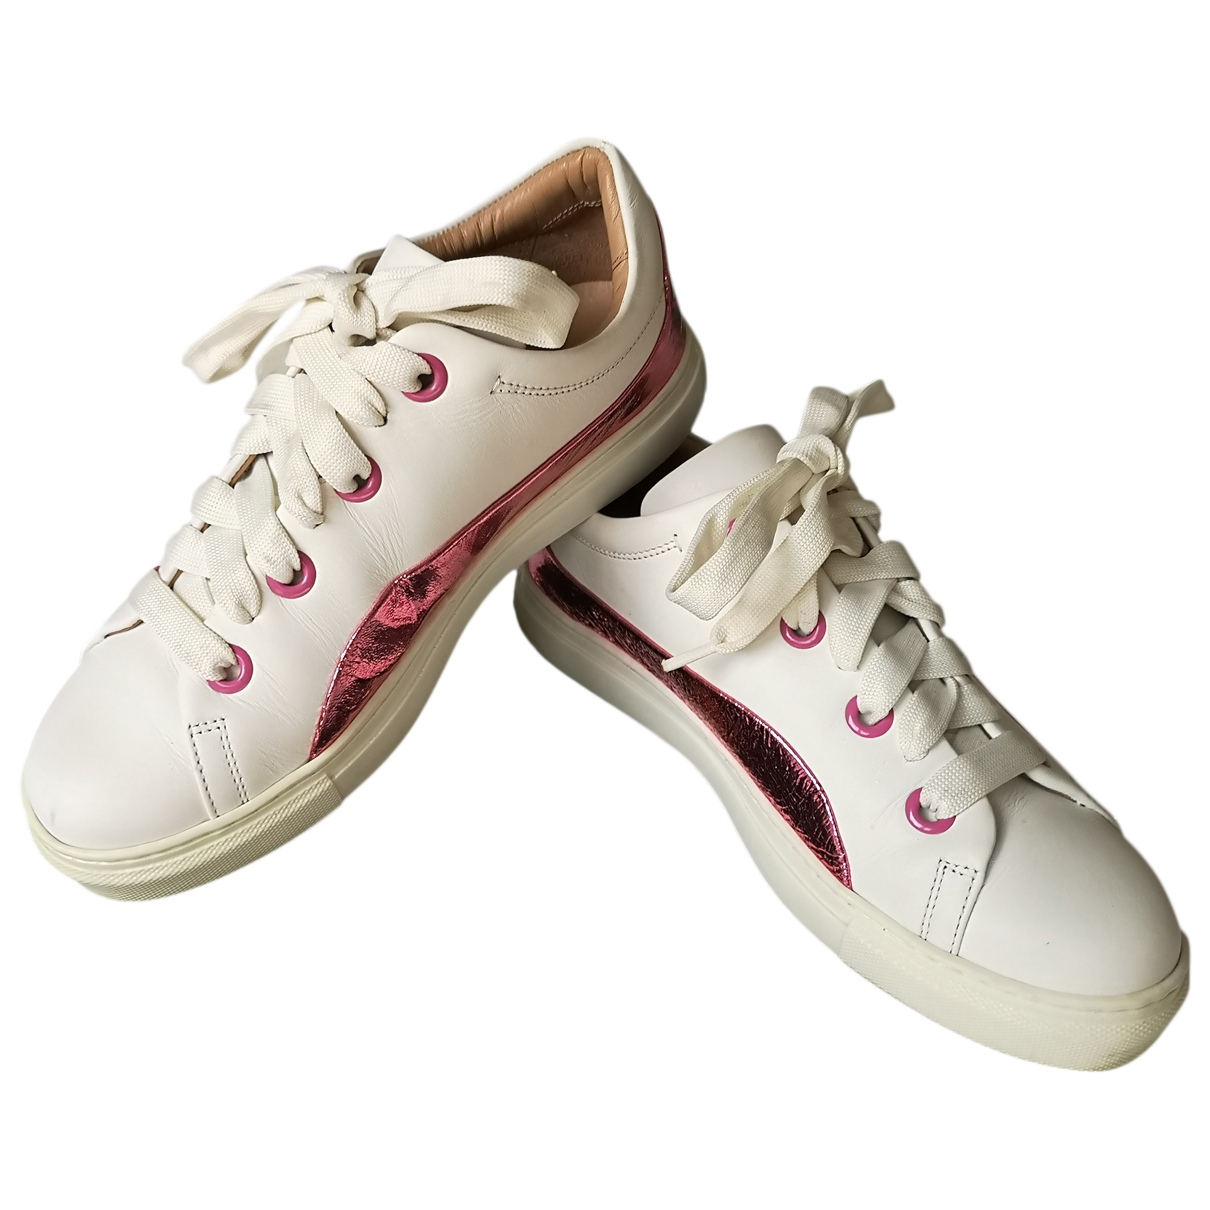 Twin Set N White Leather Trainers for Women 37 EU